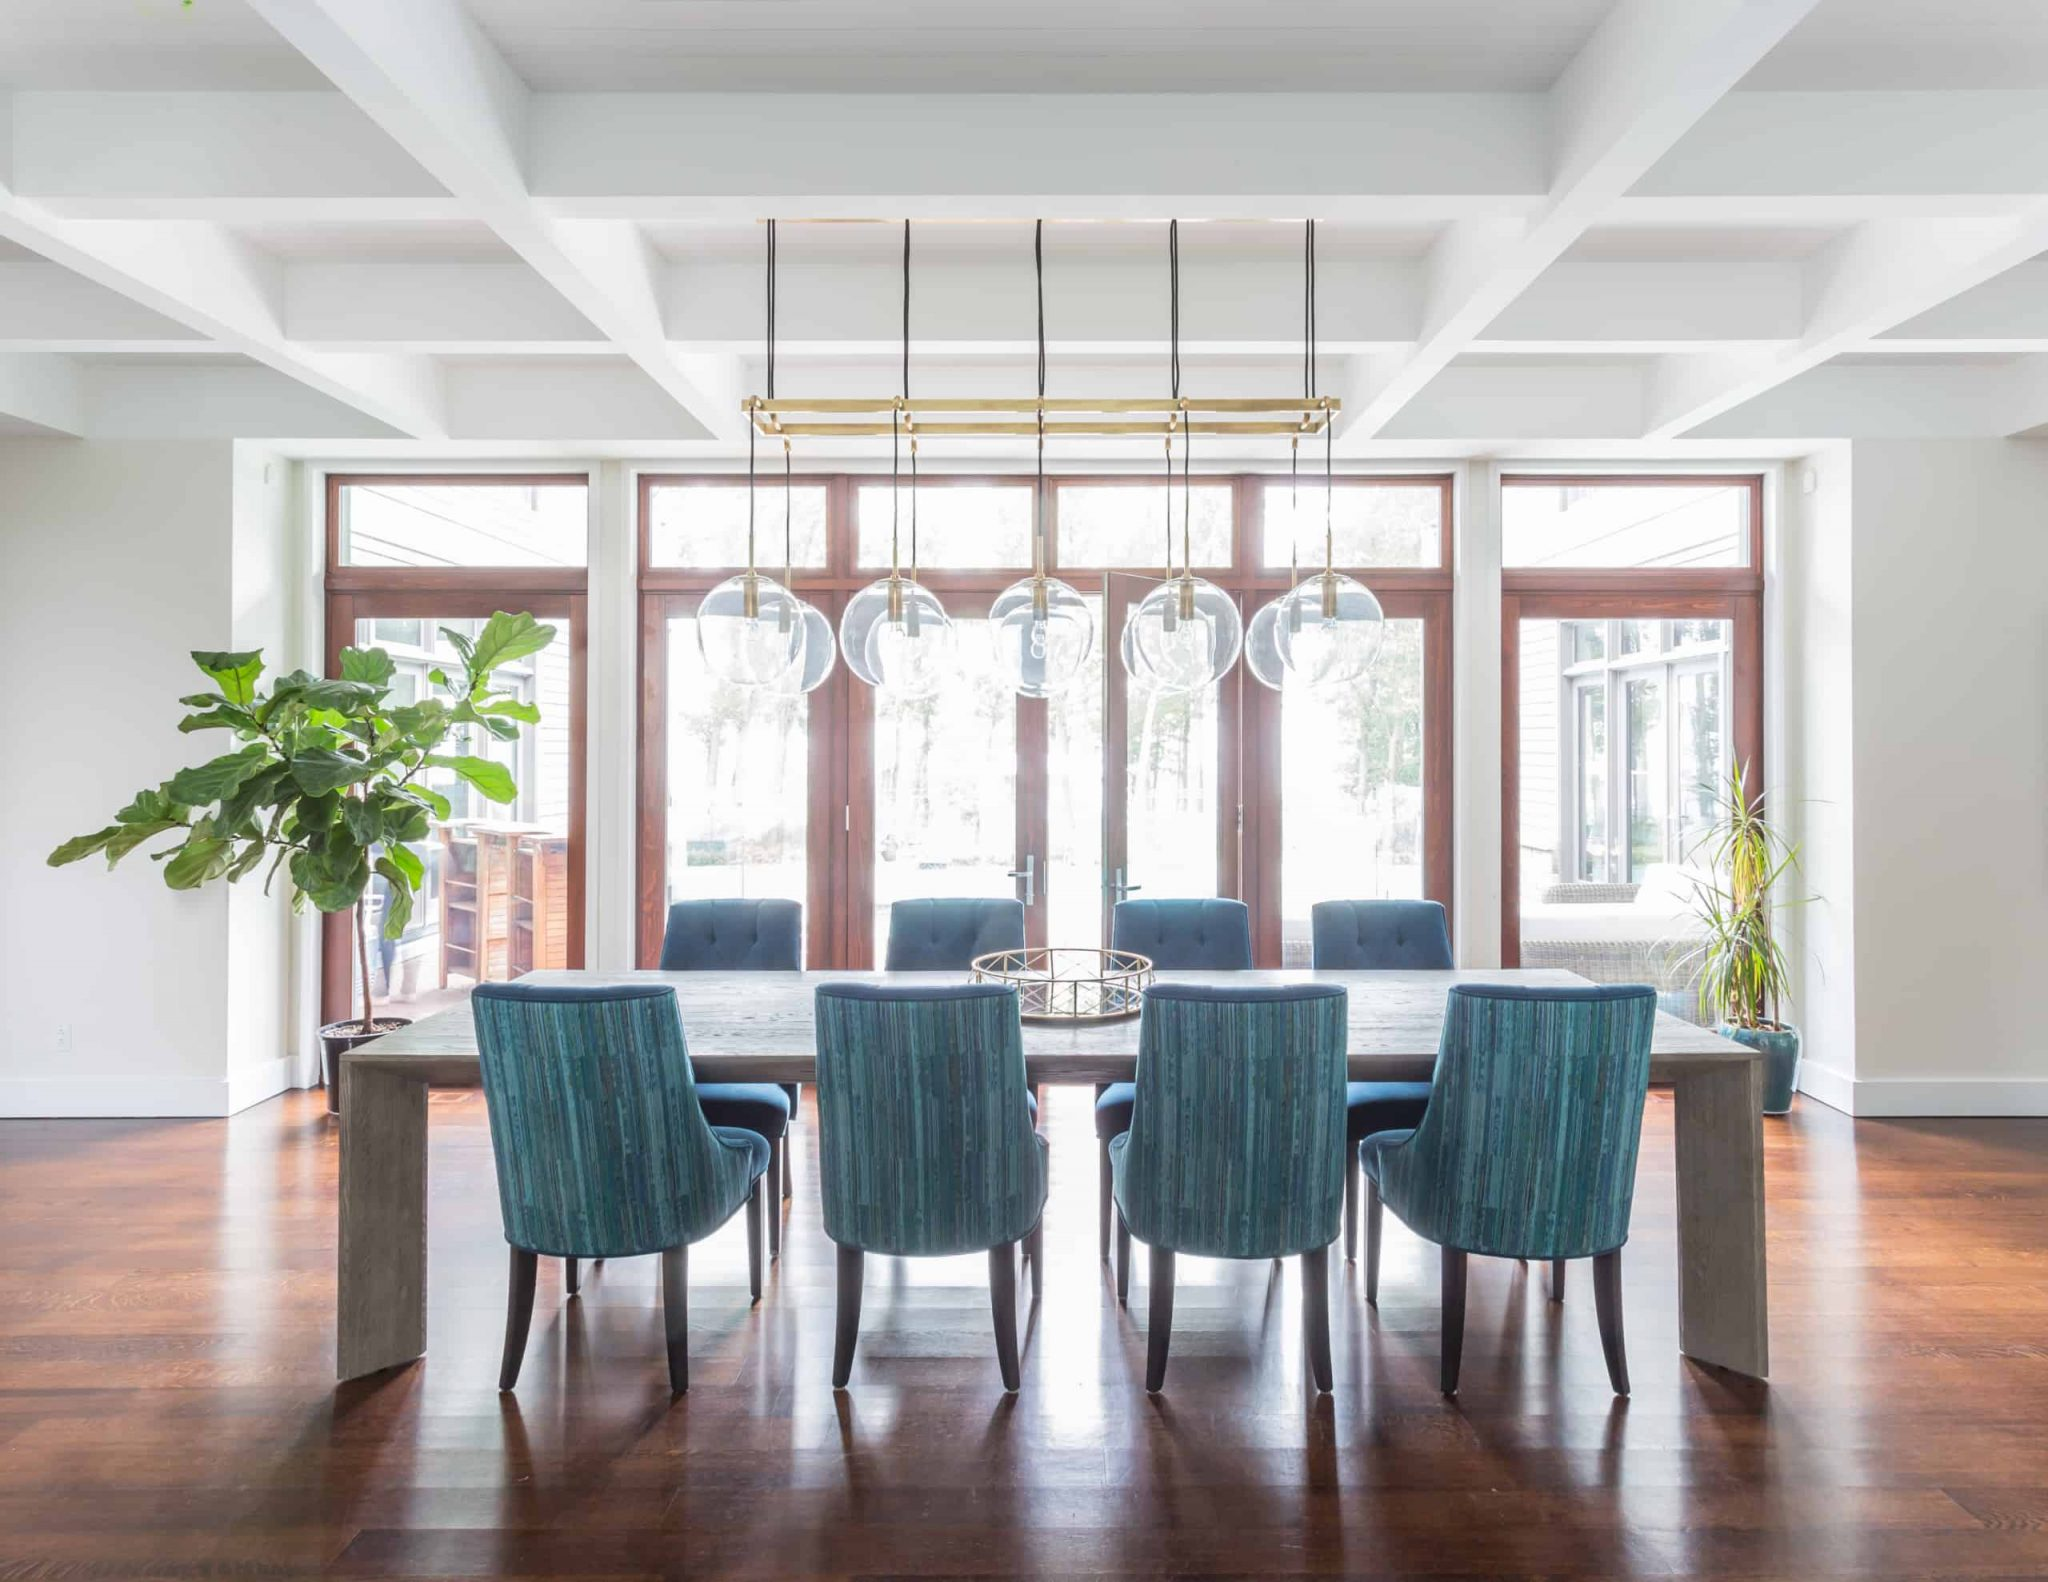 Massive dining room with blue chairs at the table